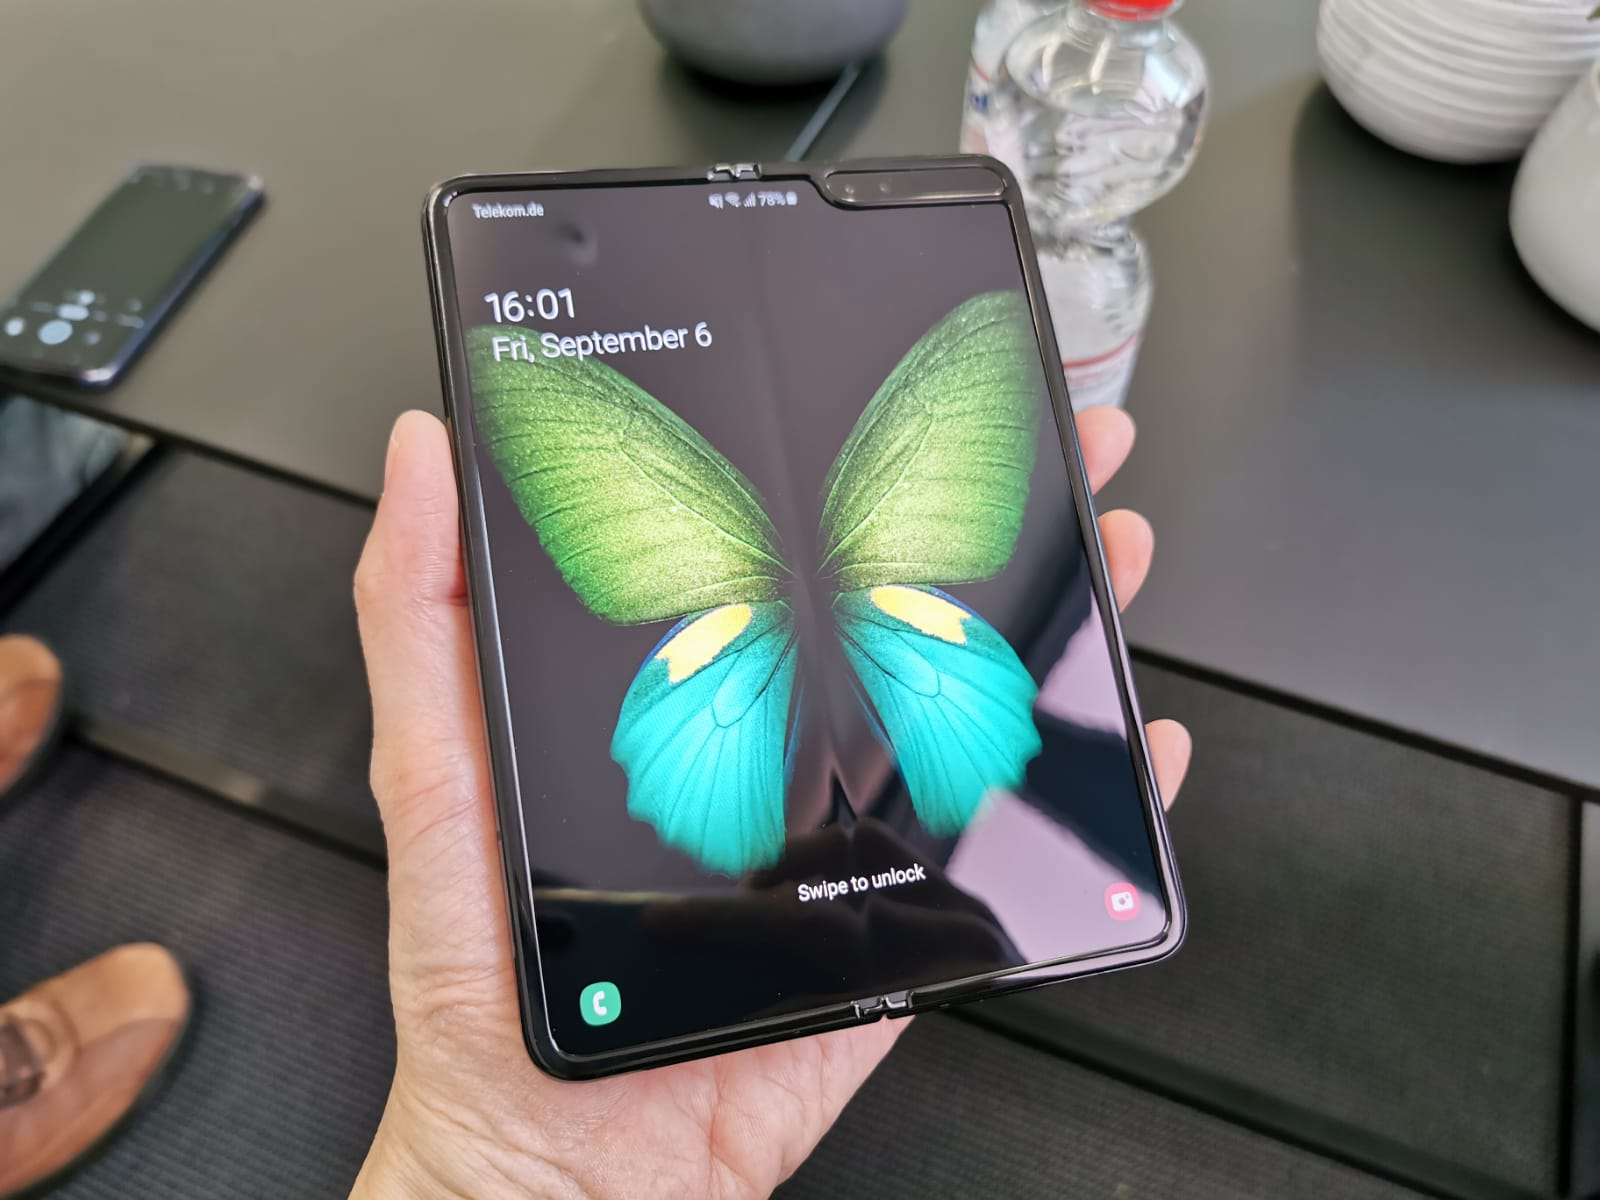 The Samsung Galaxy Fold will be available in Singapore on 18 September.